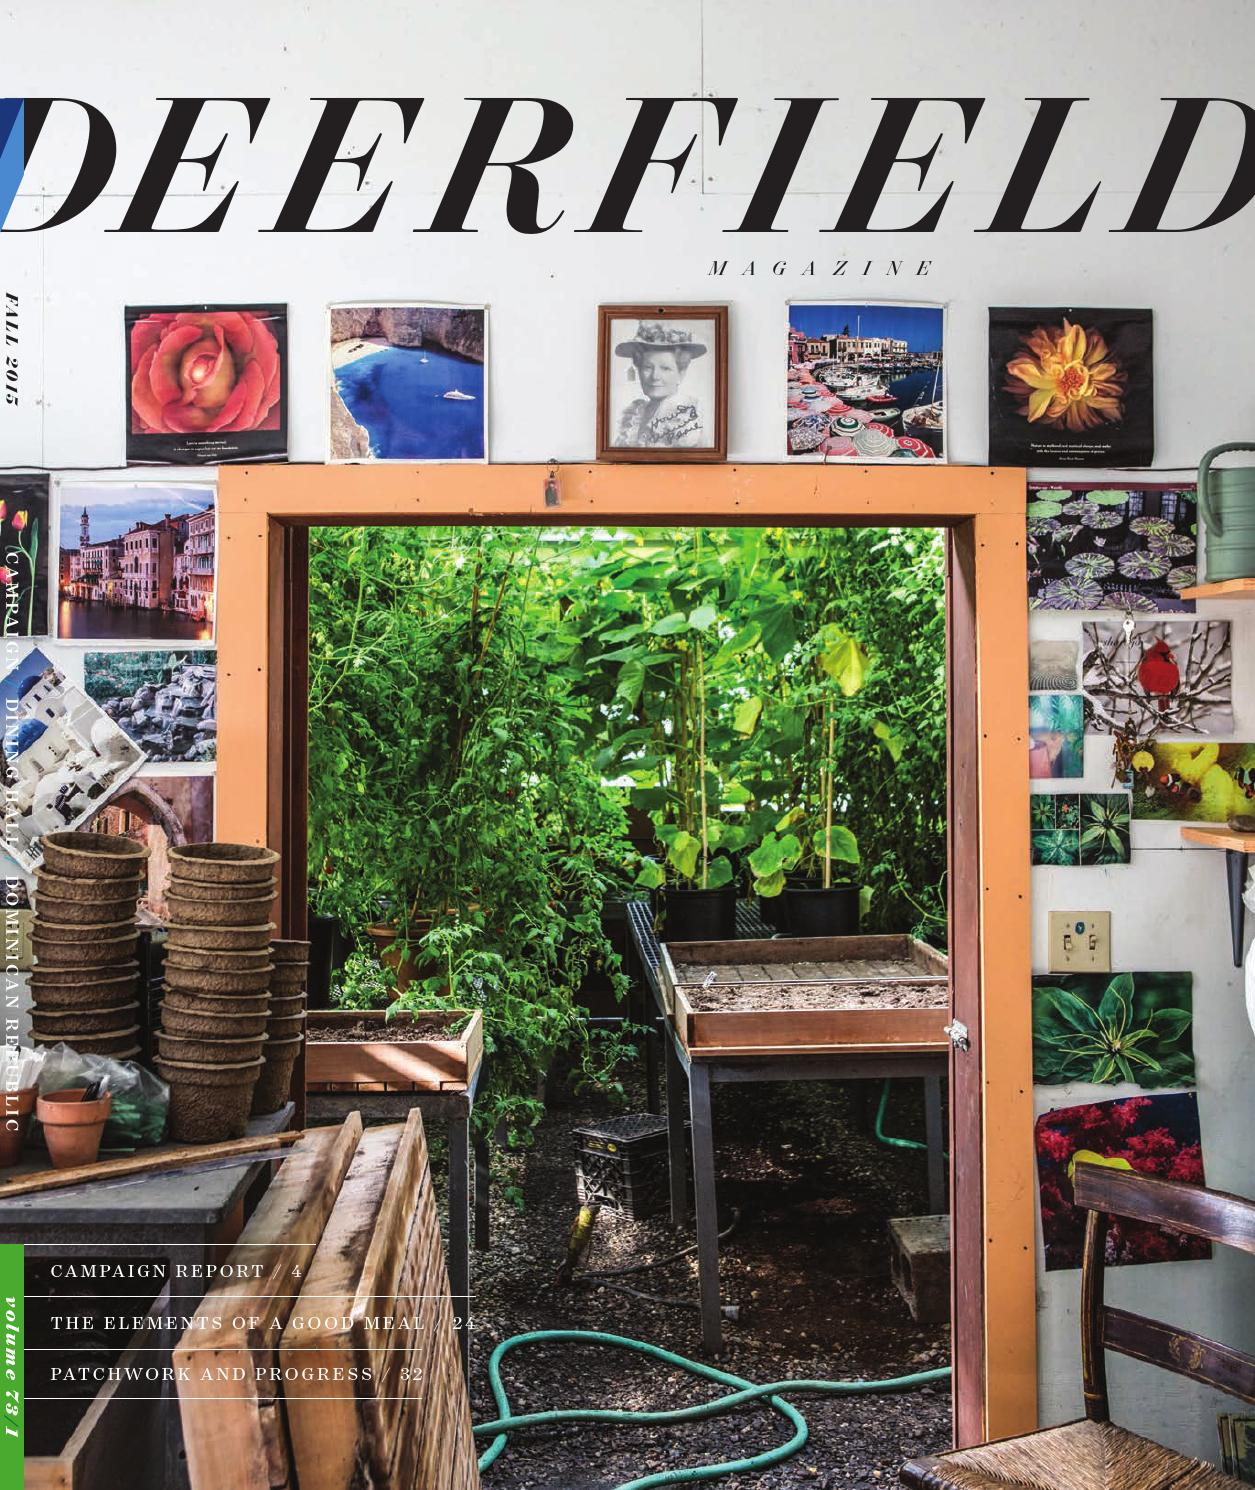 Fall 2015 Deerfield Magazine By Deerfield Academy Issuu